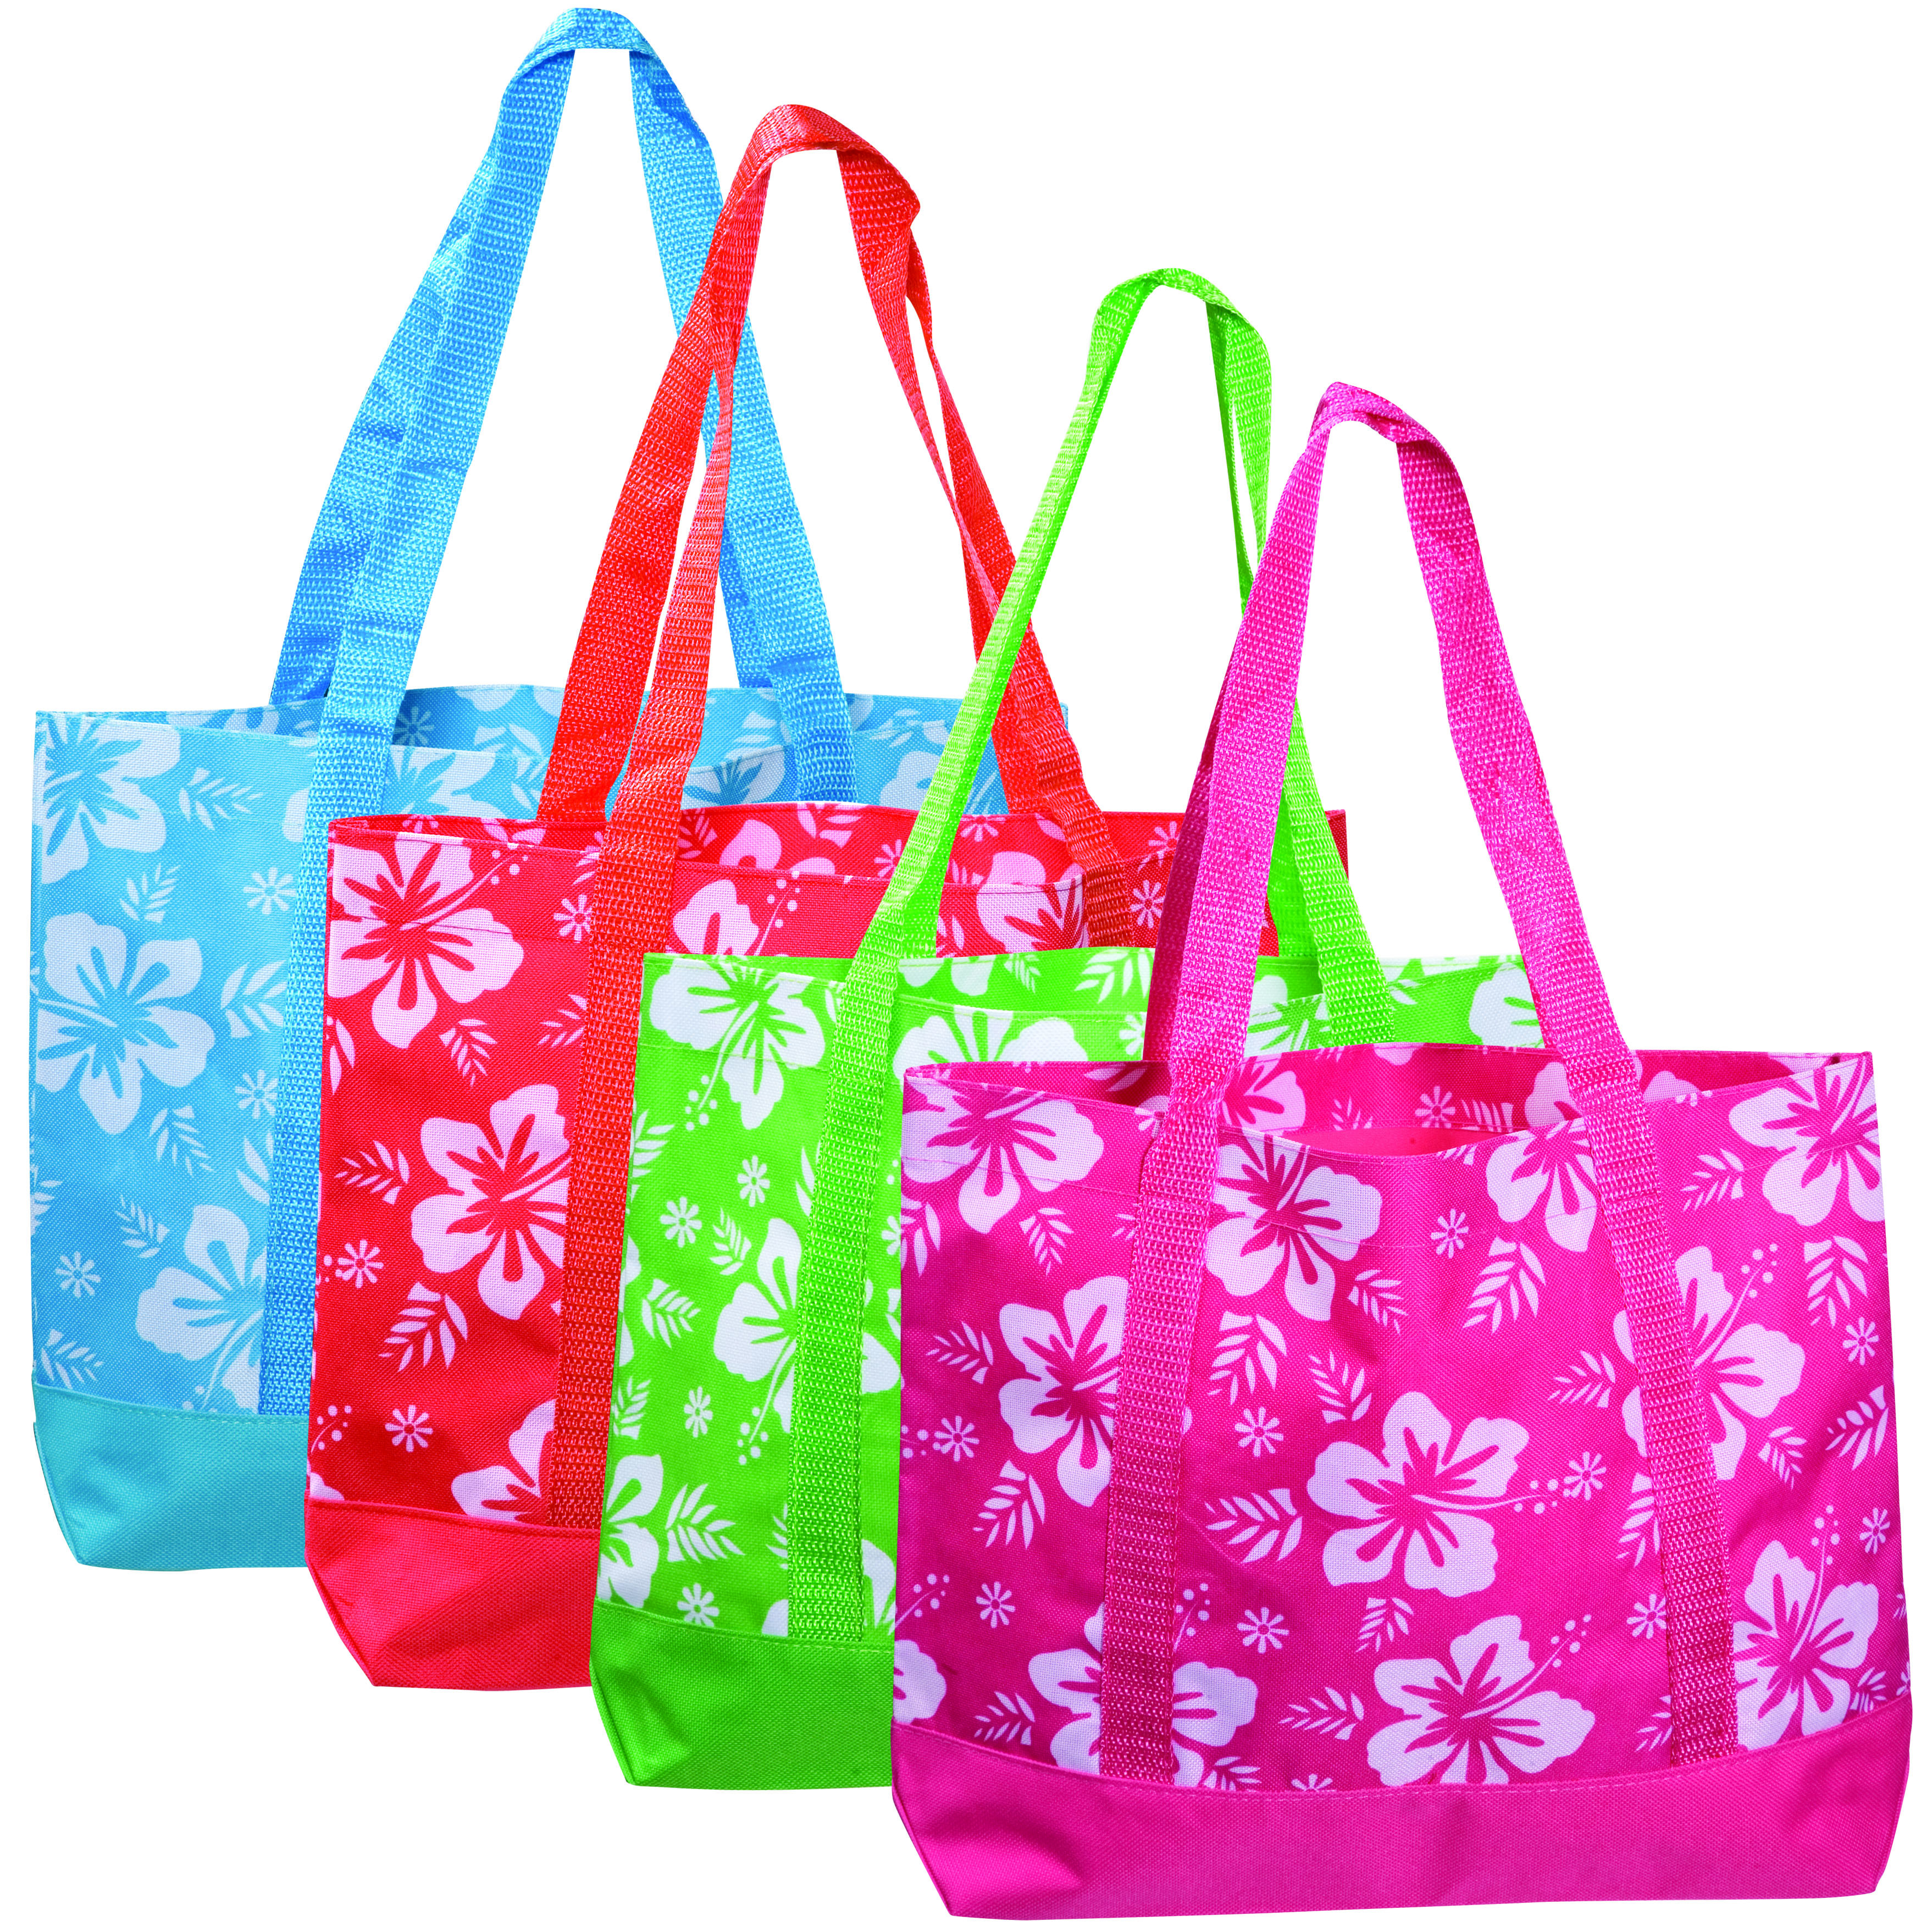 Colorful Beach Bags More